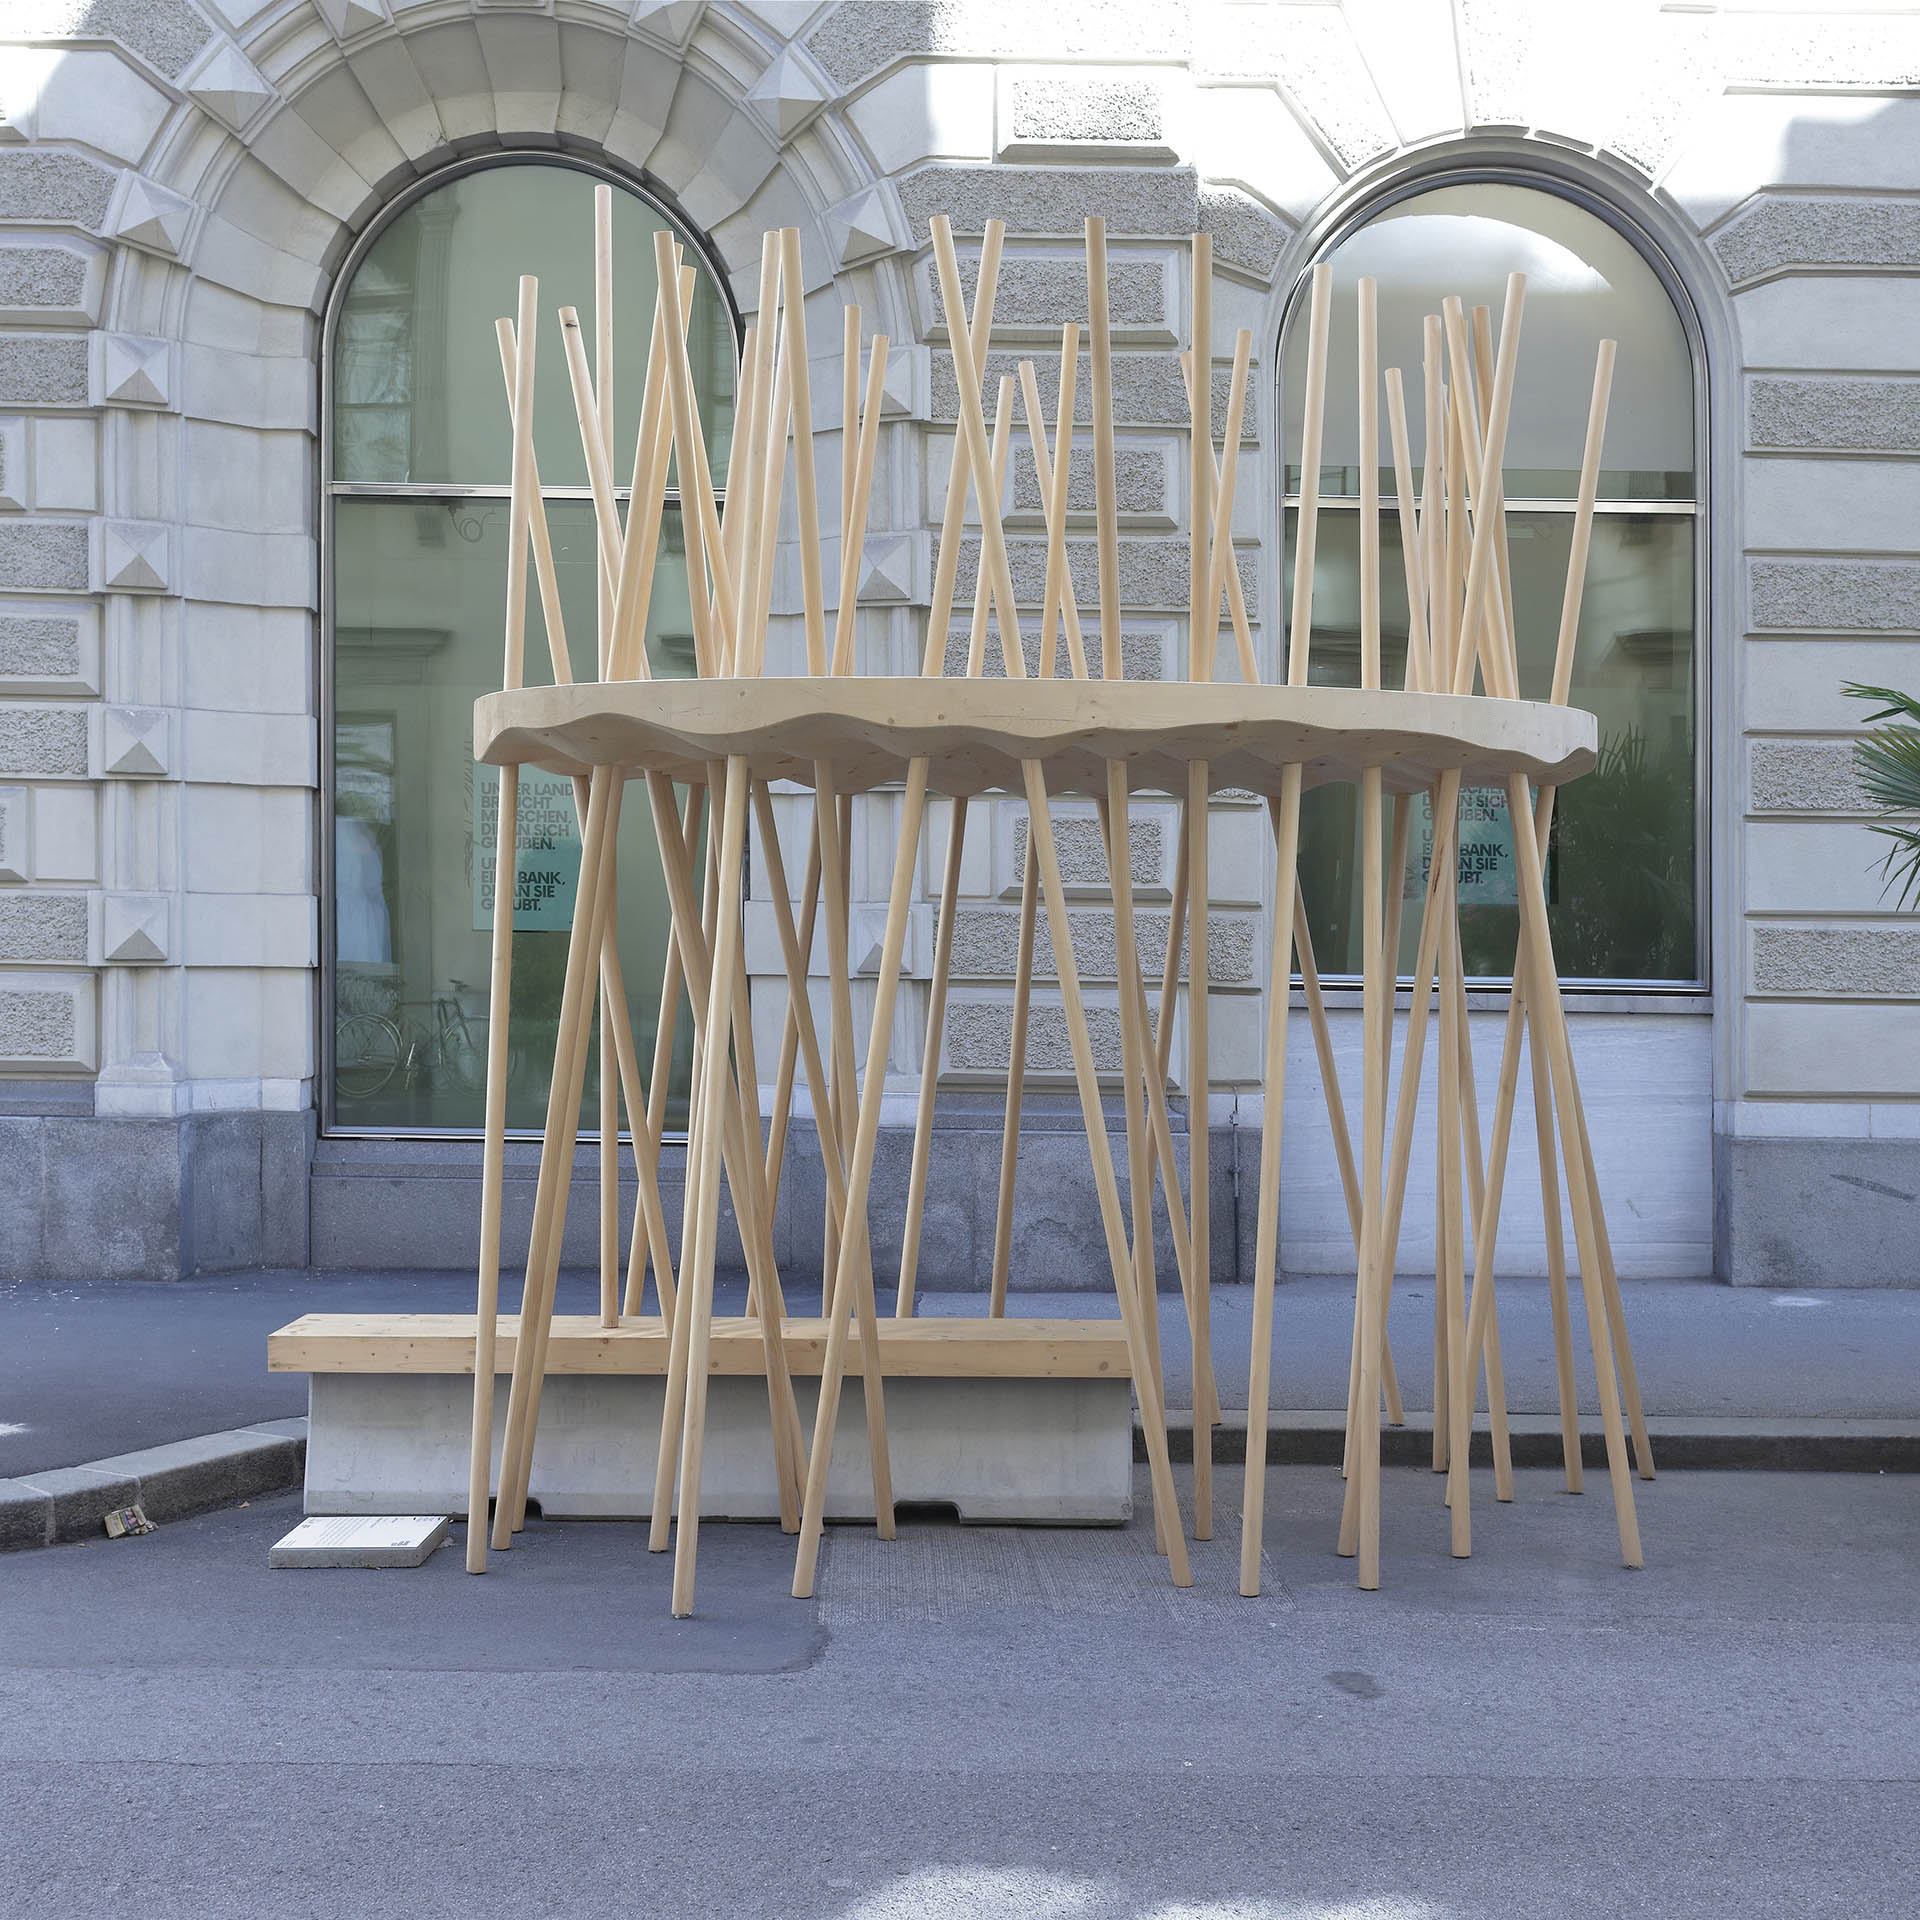 zweithaler - Mikado Smart Urban Furniture